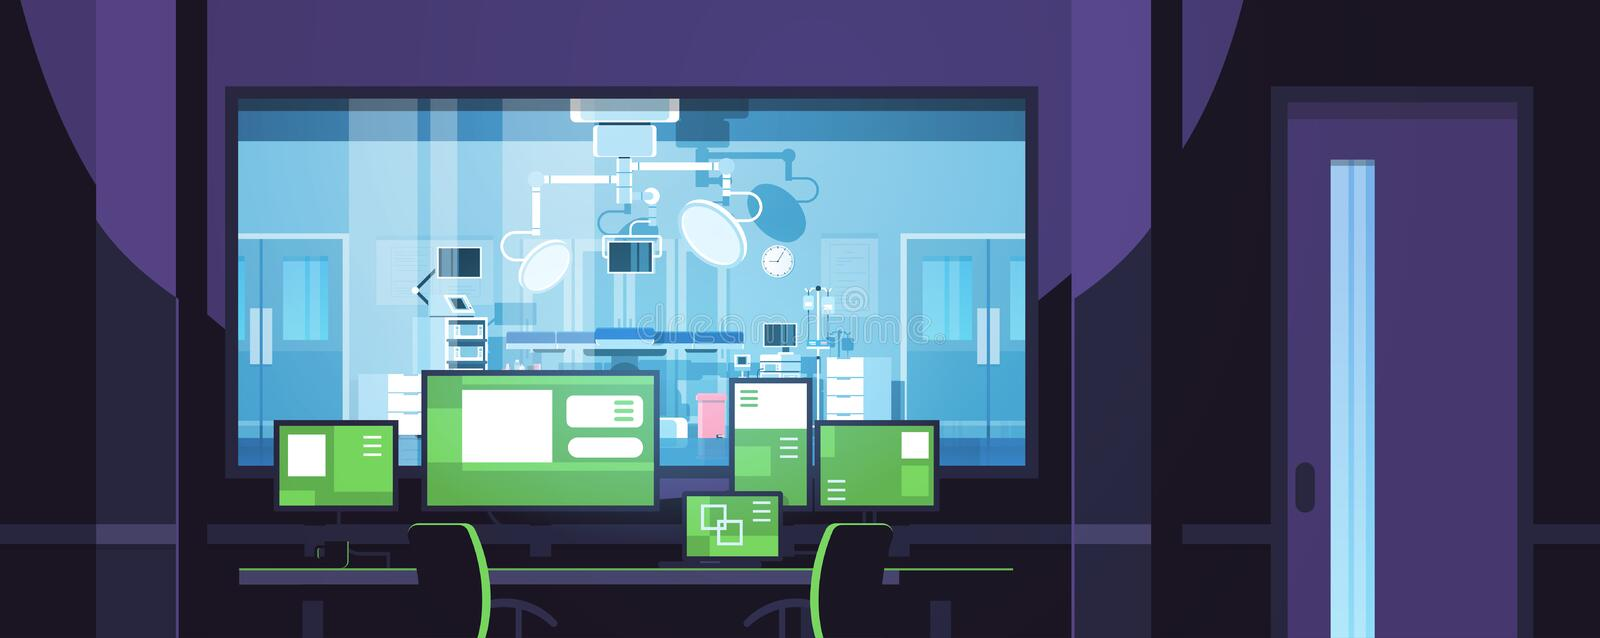 Monitors displaying medical information control center office behind glass window hospital operating table surgery room. Surveillance security system flat royalty free illustration